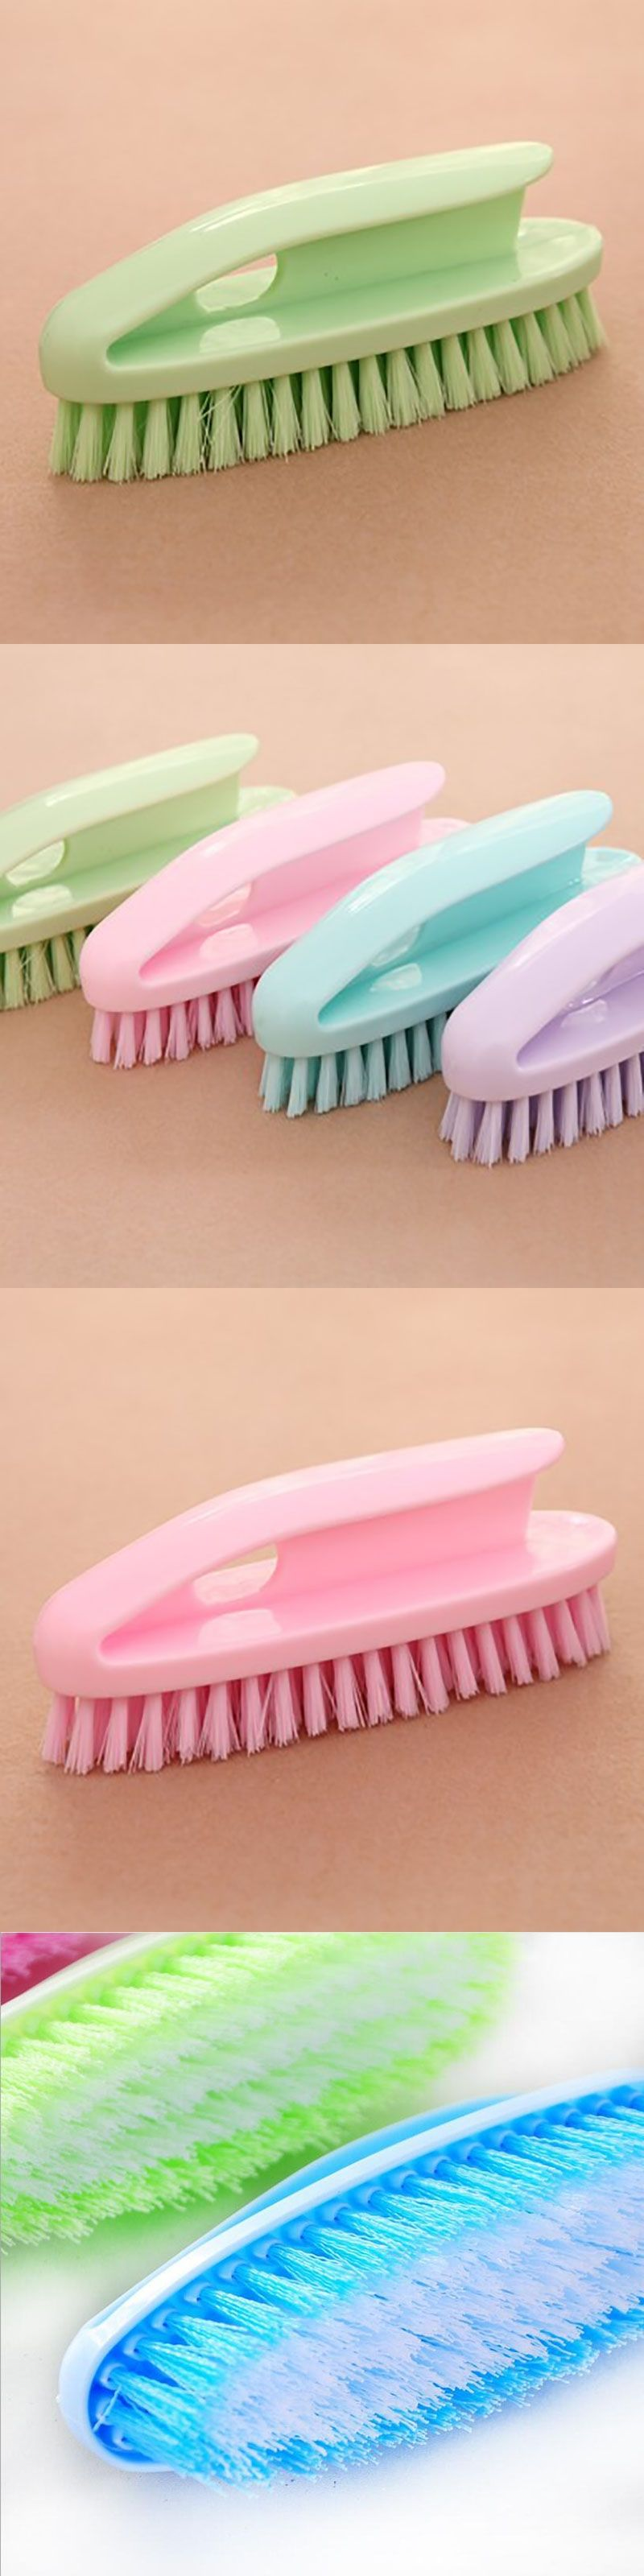 Household cleaning supplies color japanese fashion cleaning brush